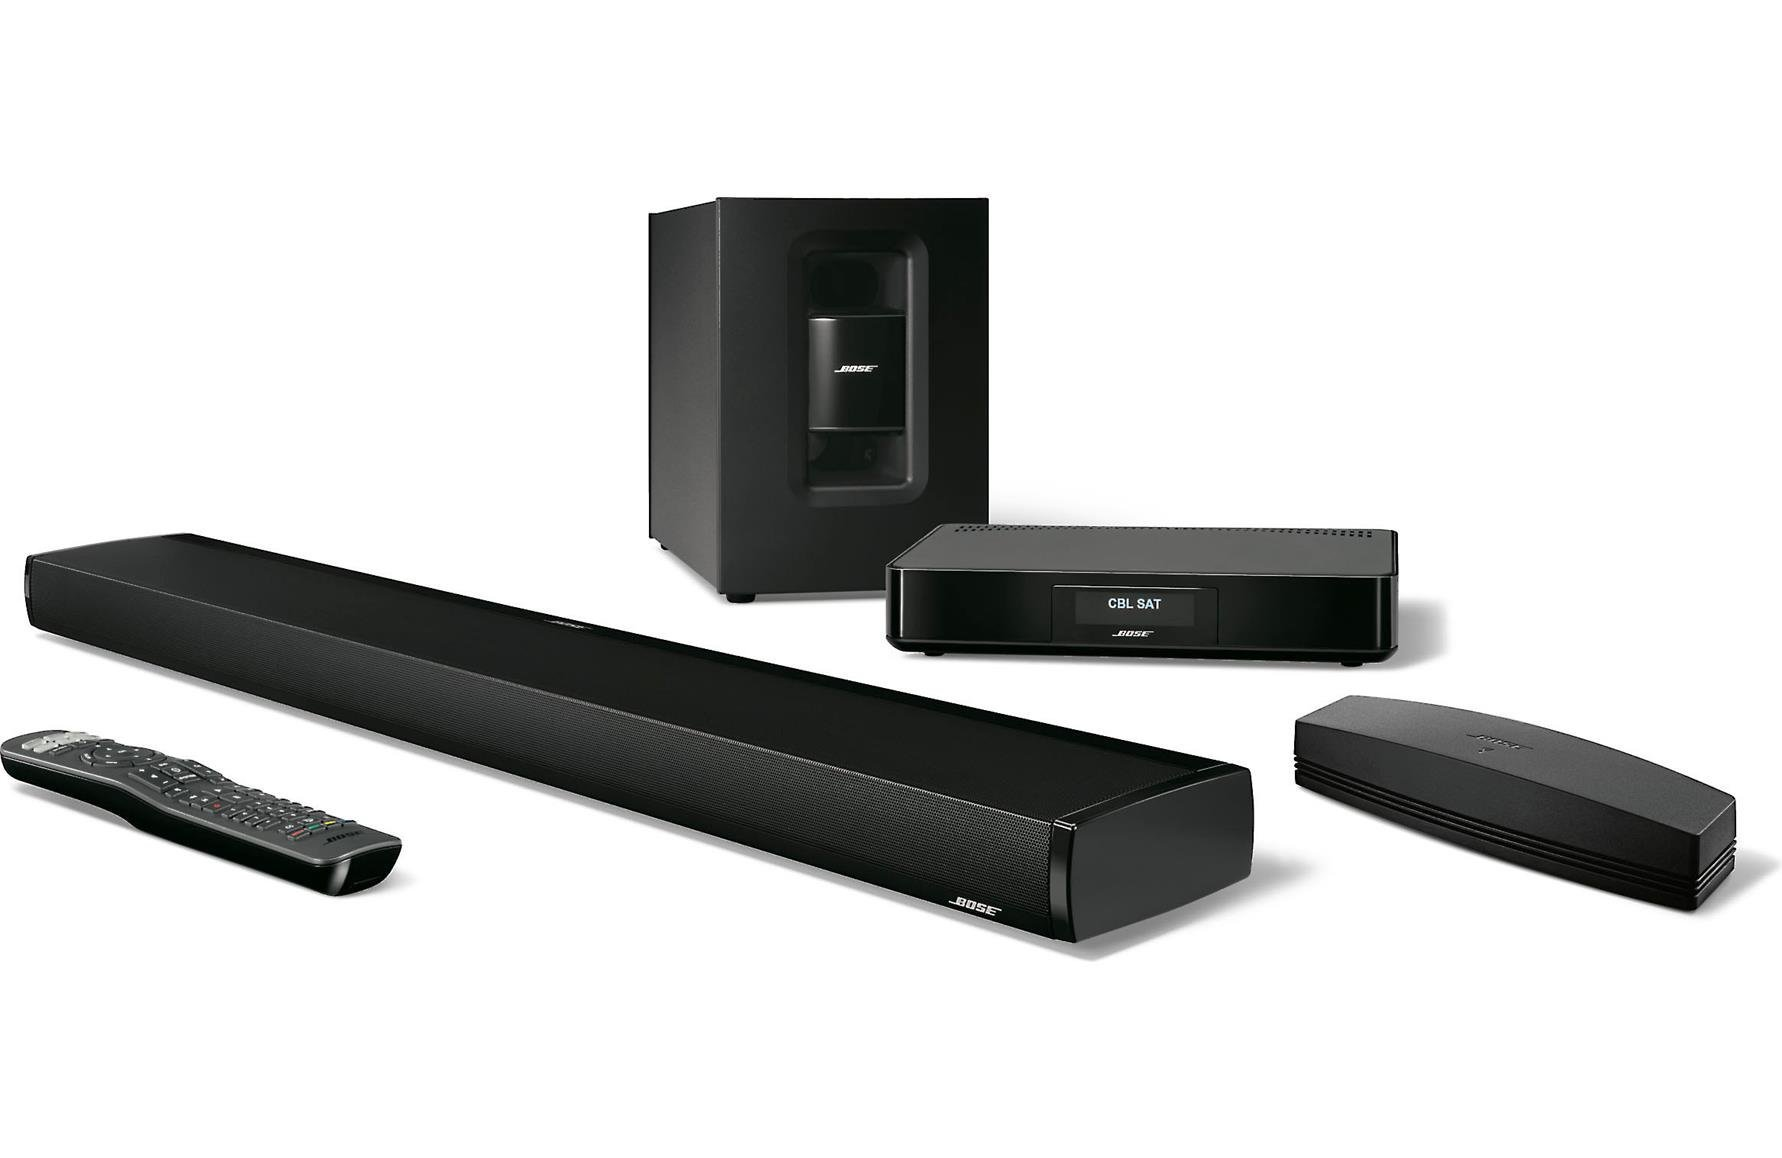 8. Bose SoundTouch 130 Home Theater System